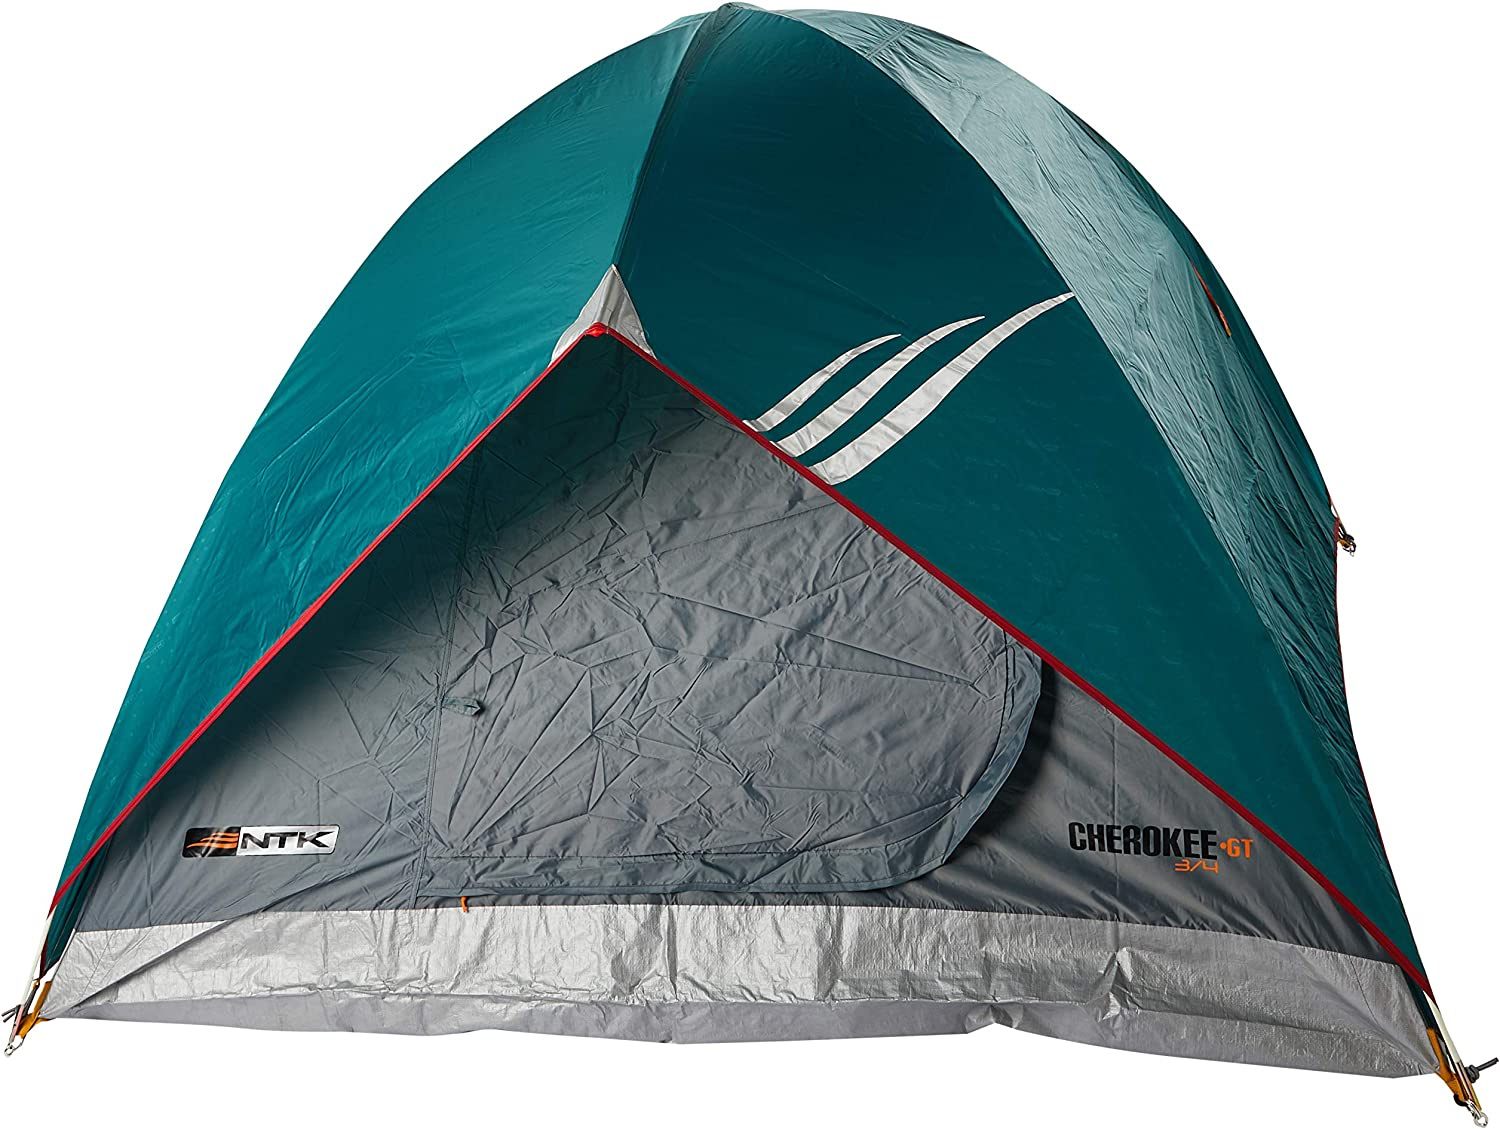 NTK Cherokee GT 3/4 Person Tent Review